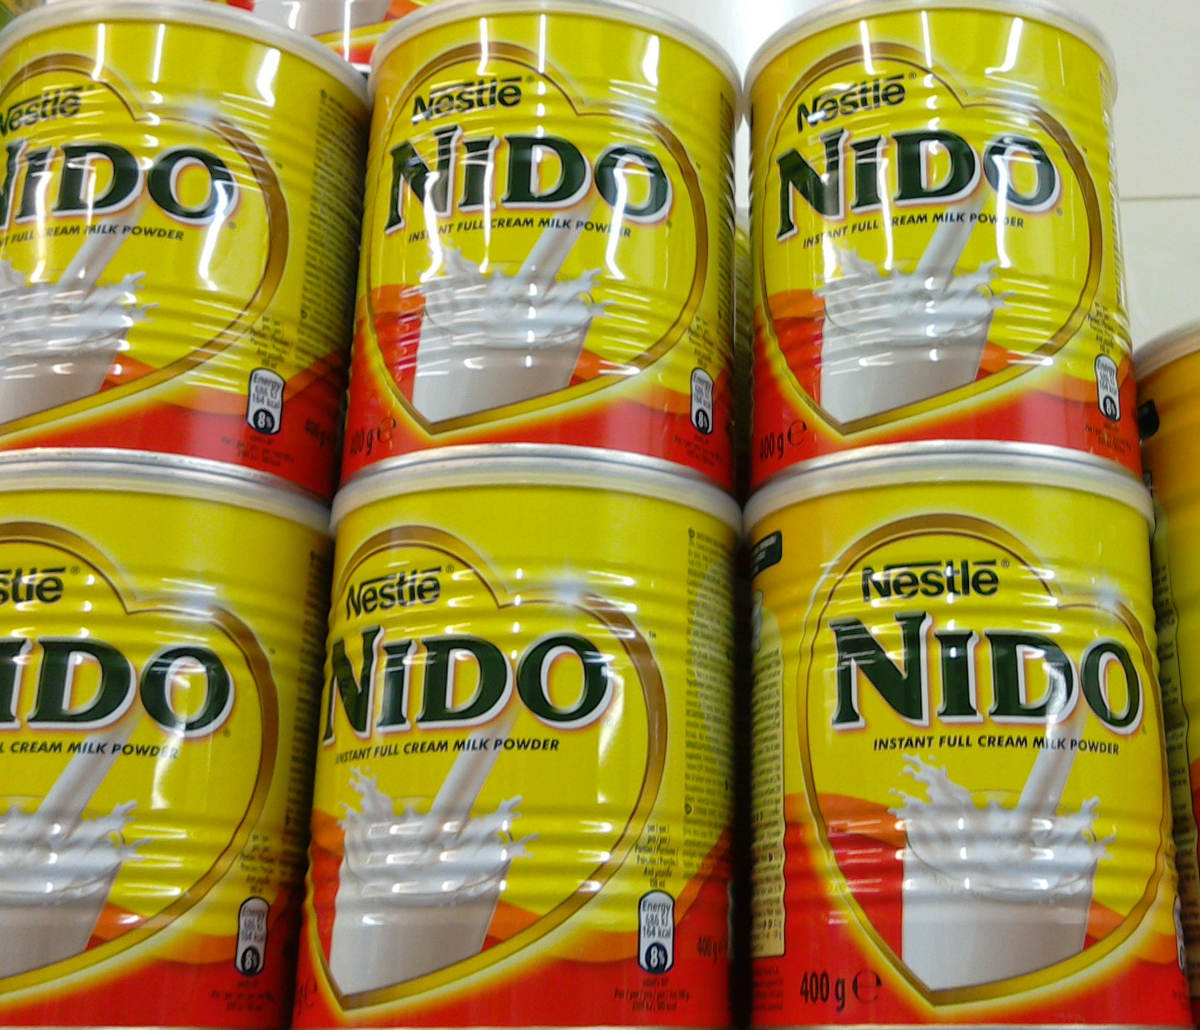 Nido Infant Milk Powder, Nido Infant Milk, Nestle Nido Kinder 1, Nido Kinder Milk, Nestle Nido Milk